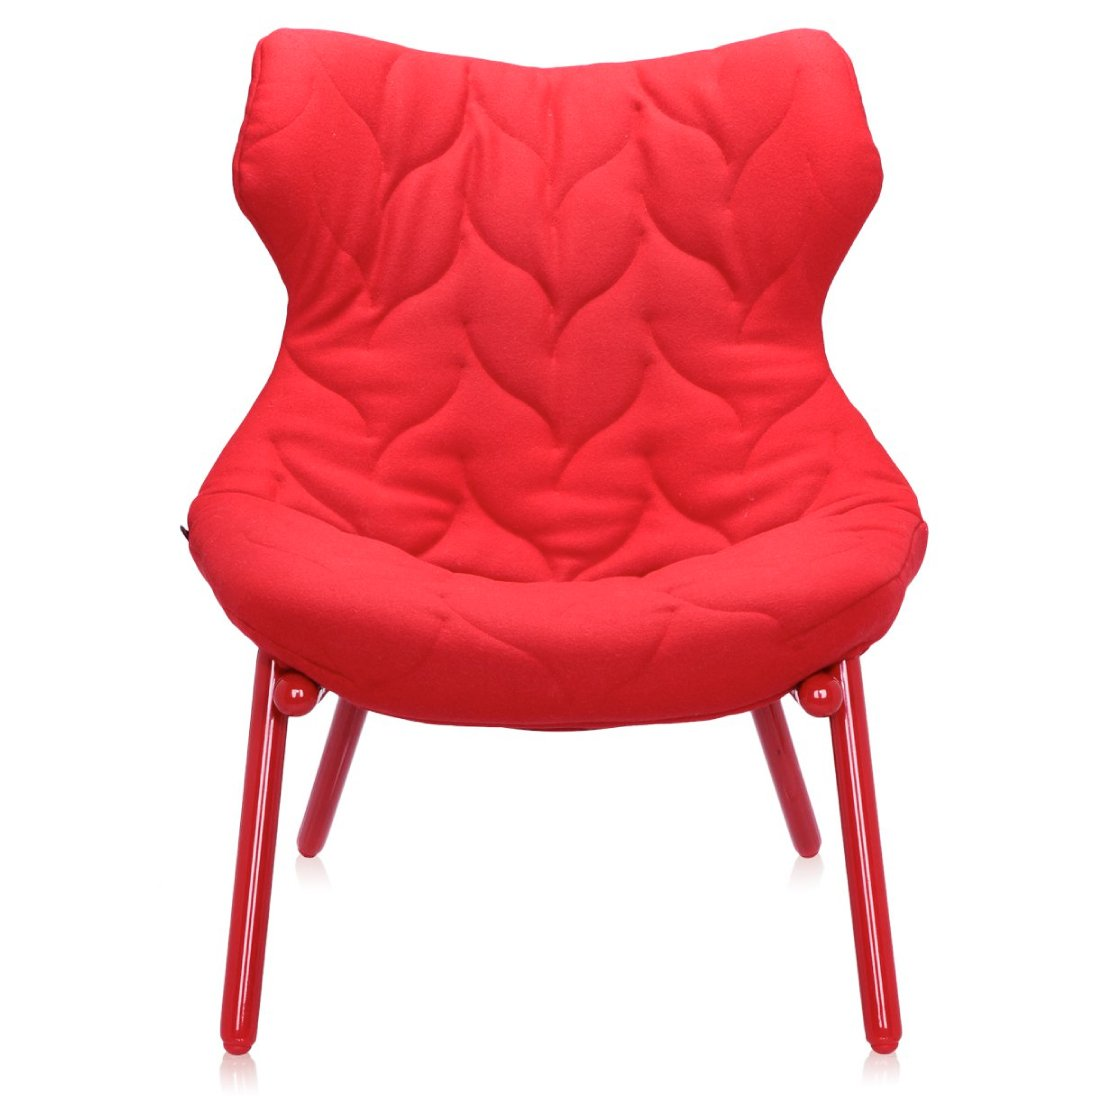 Kartell Foliage Fauteuil Cloth Rood / Rood